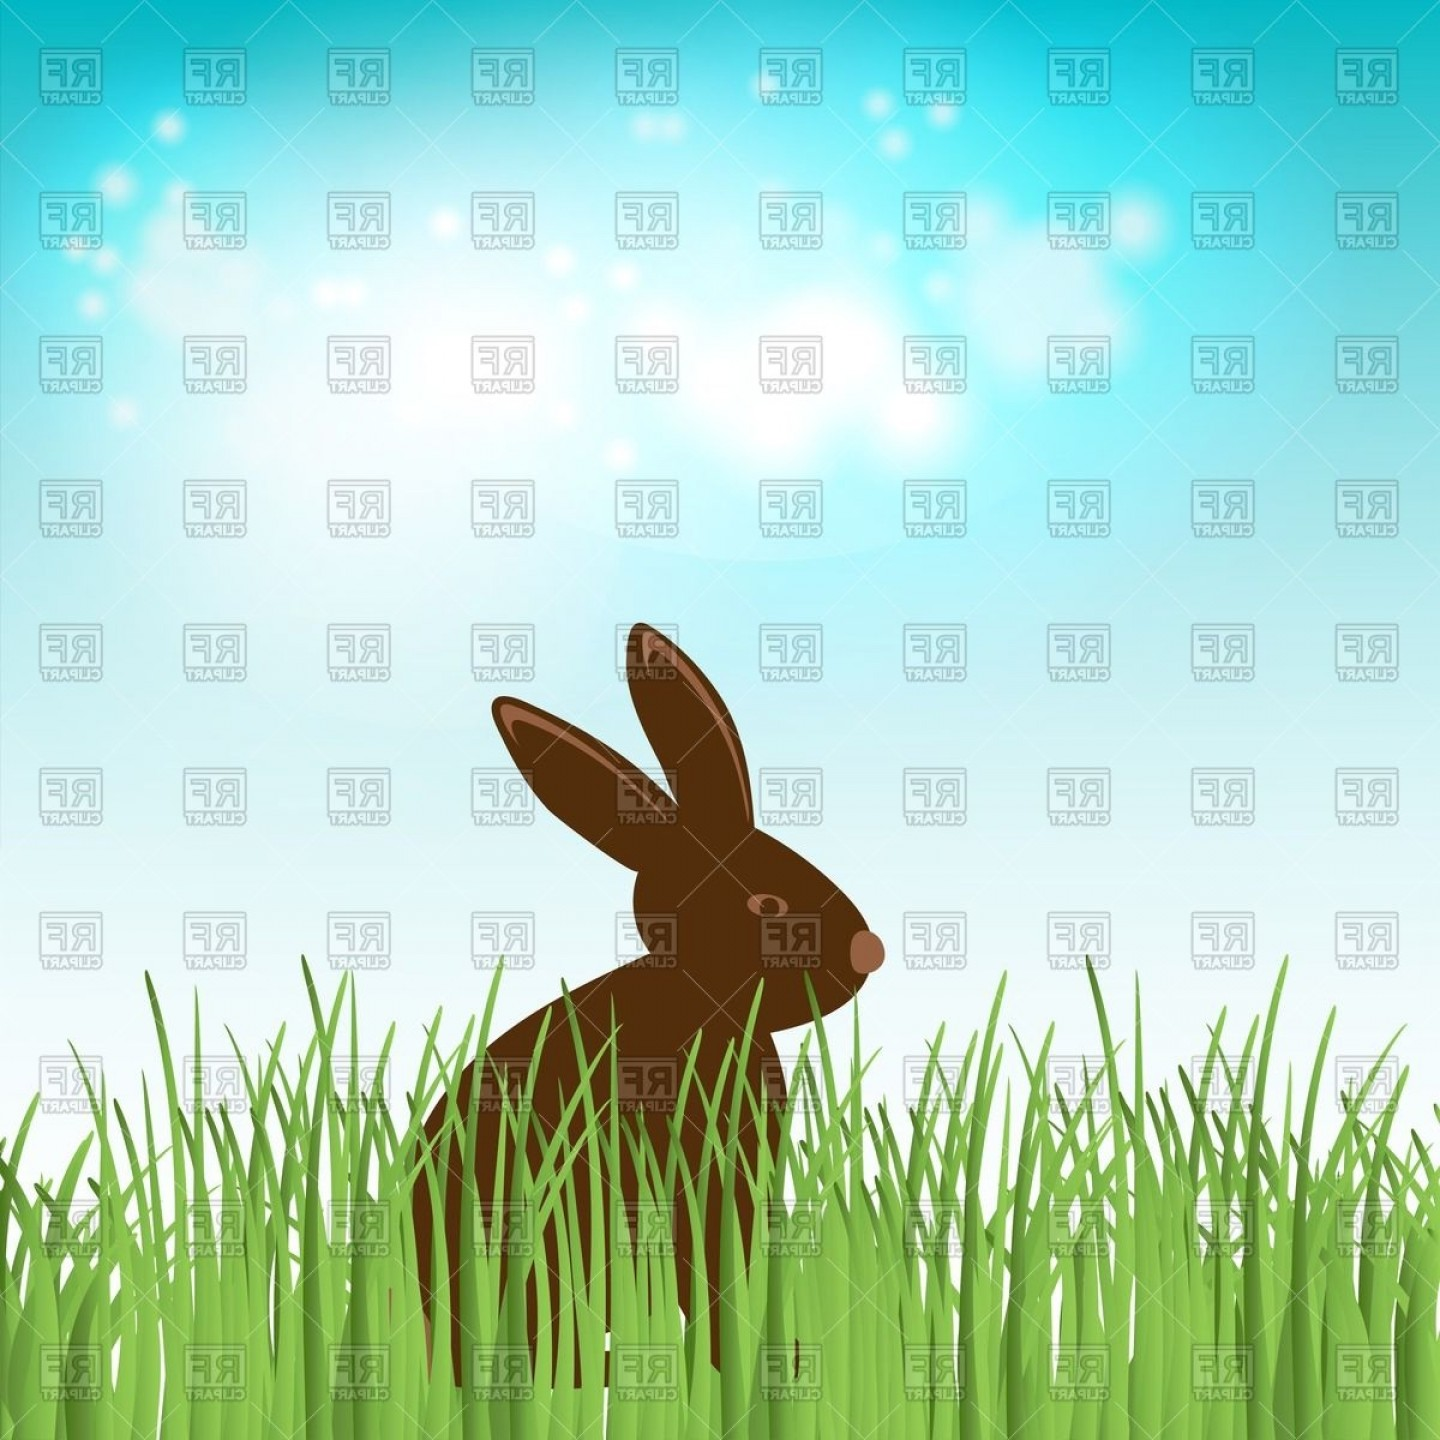 Chocolate Vector Plant: Chocolate Bunny In Green Grass On The Sky Background Vector Clipart